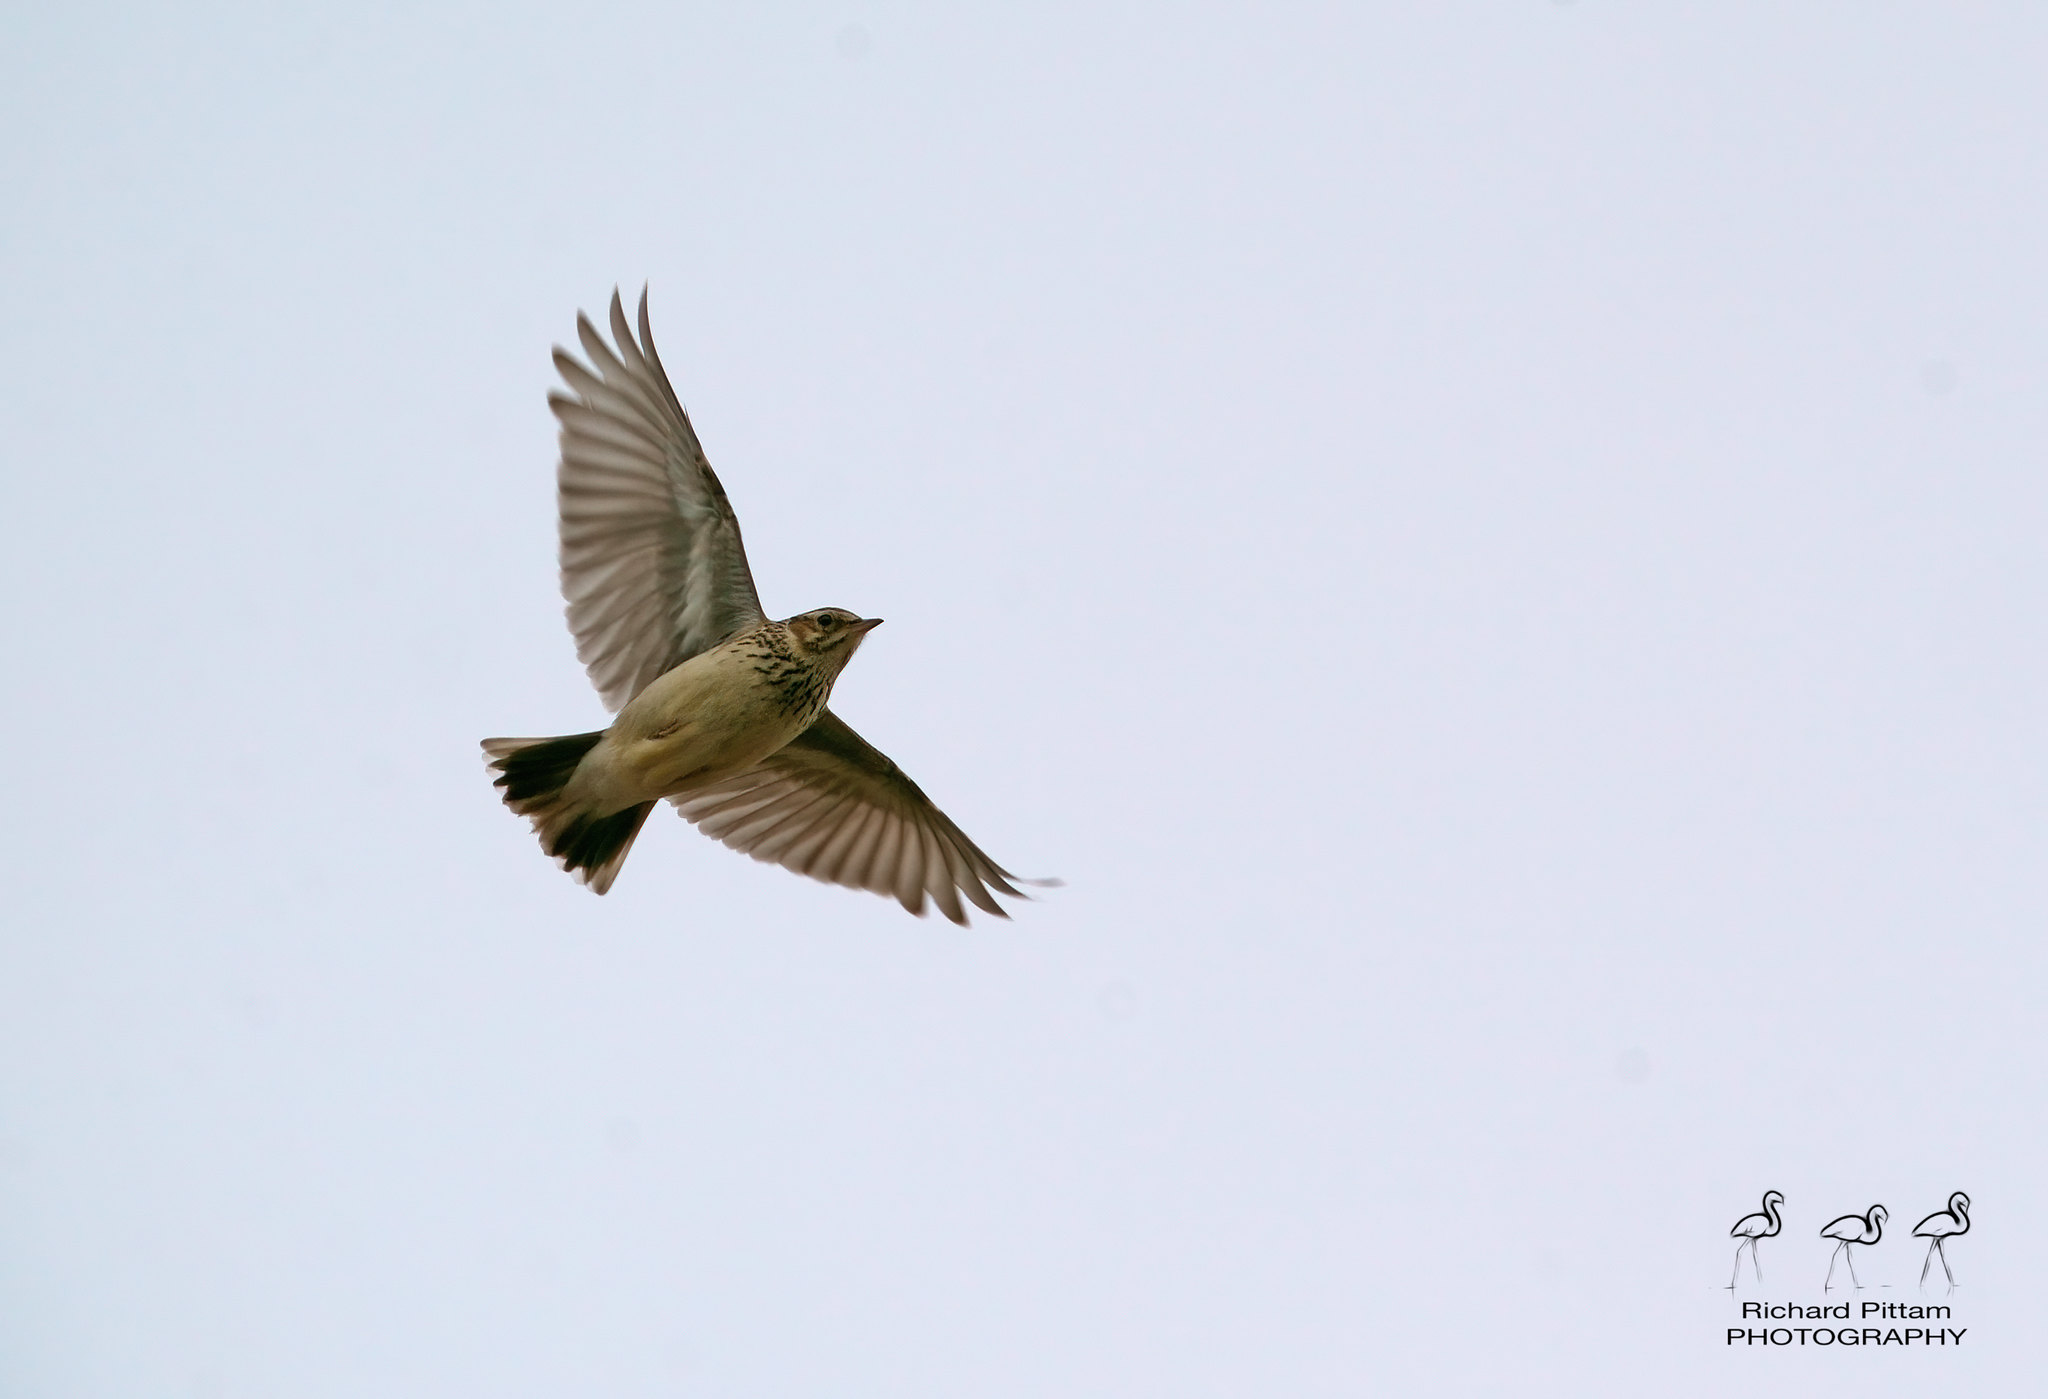 Woodlark record shot